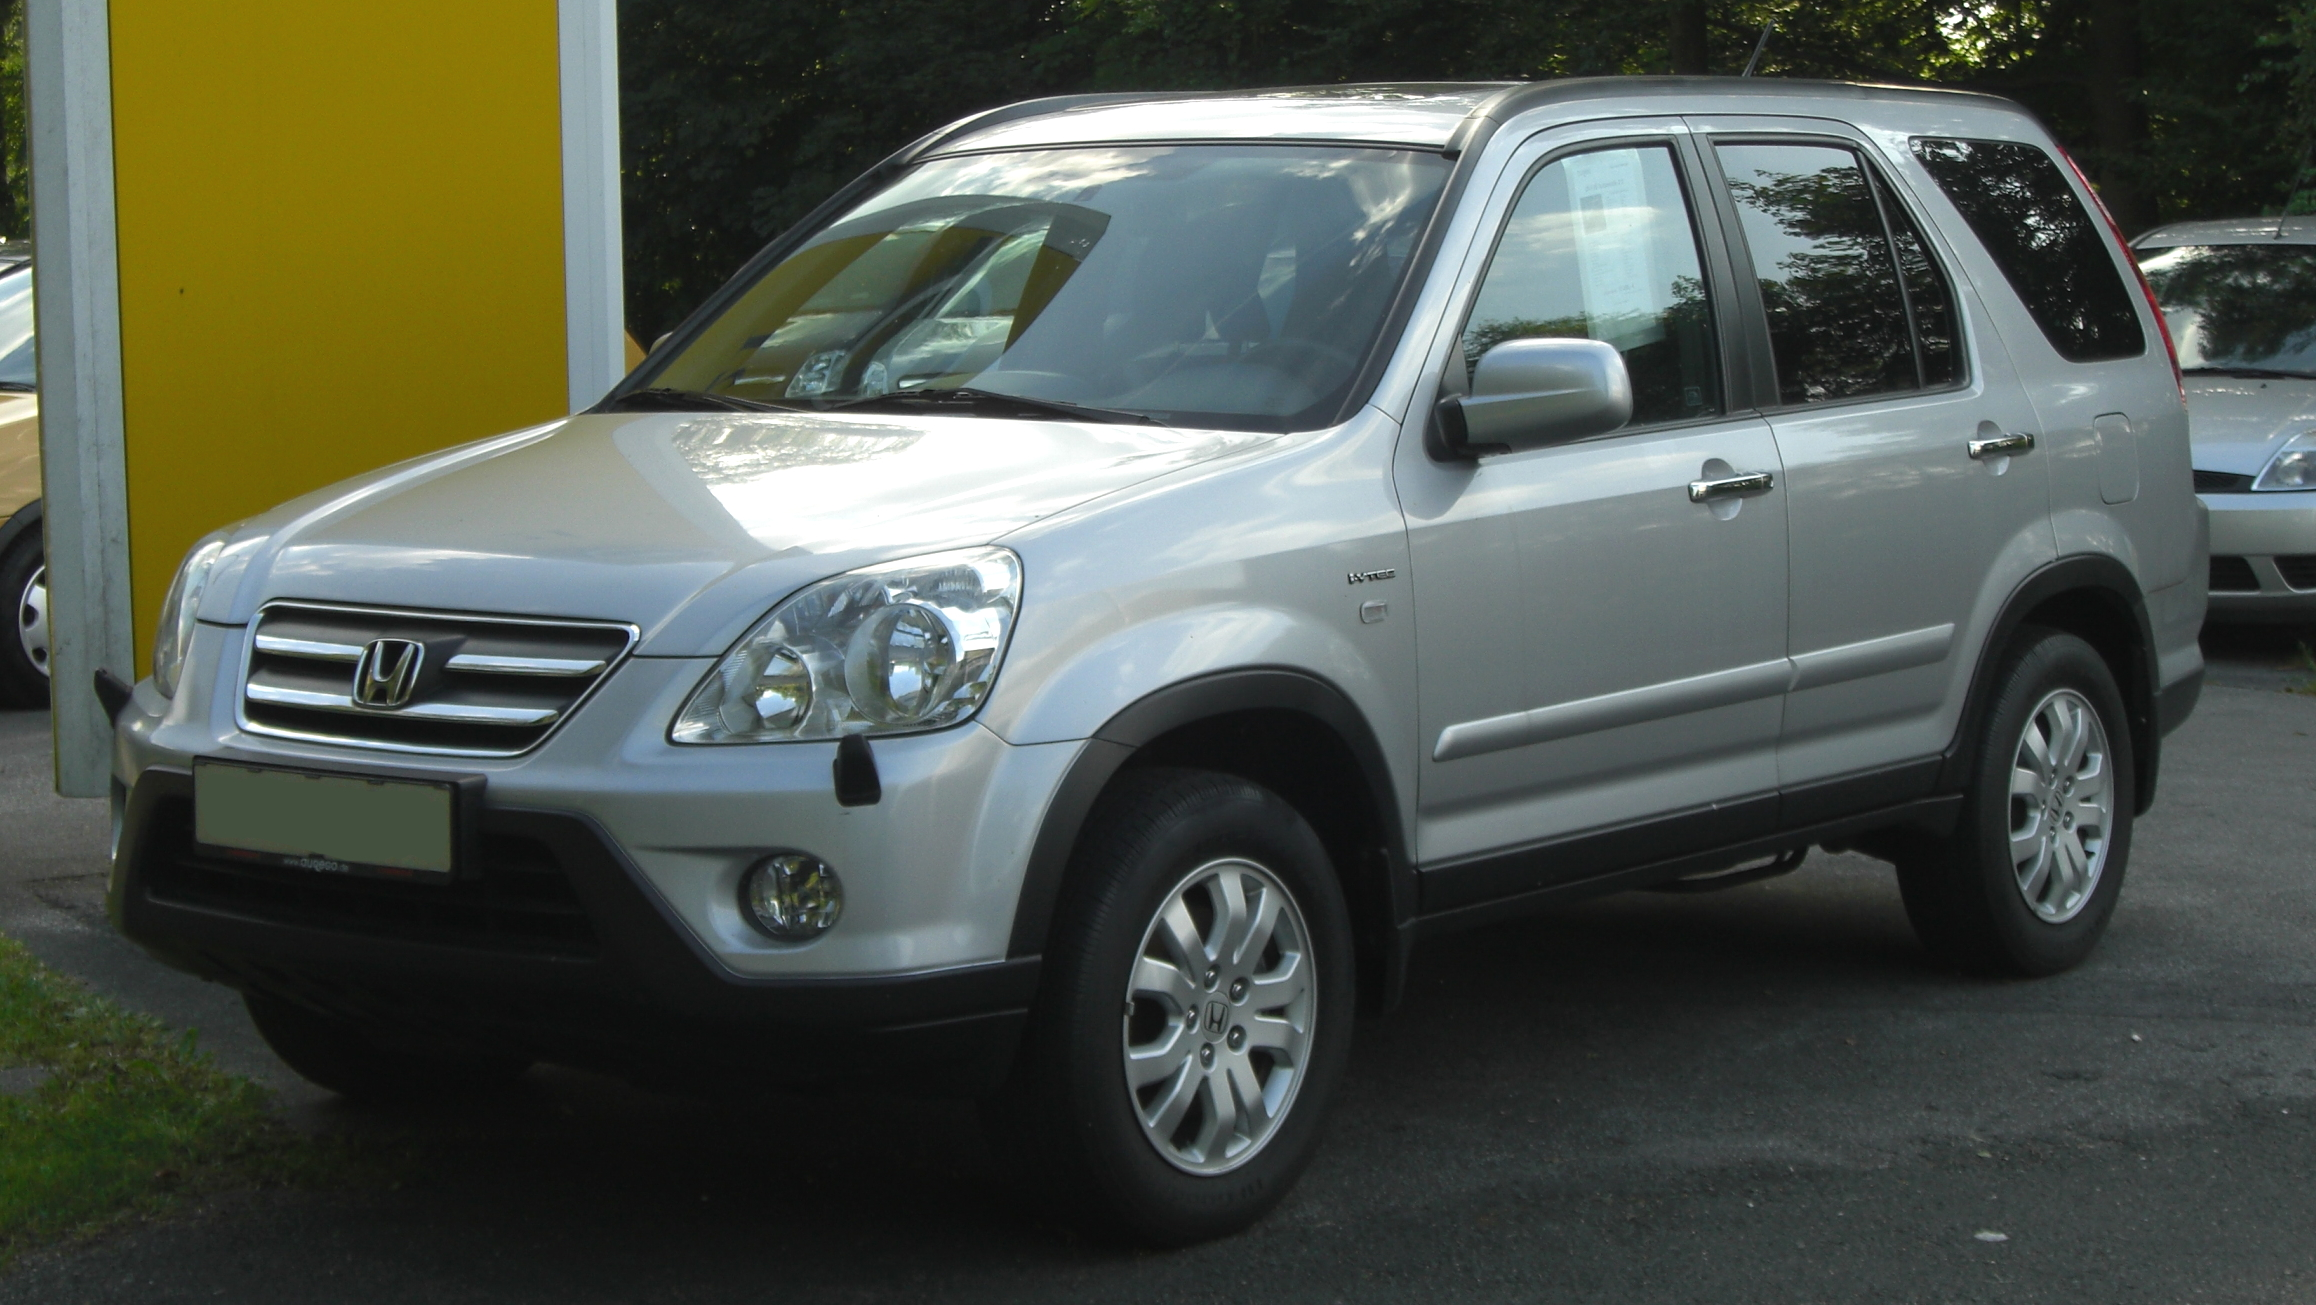 file honda cr v 2 0 i vtec facelift front jpg wikimedia commons